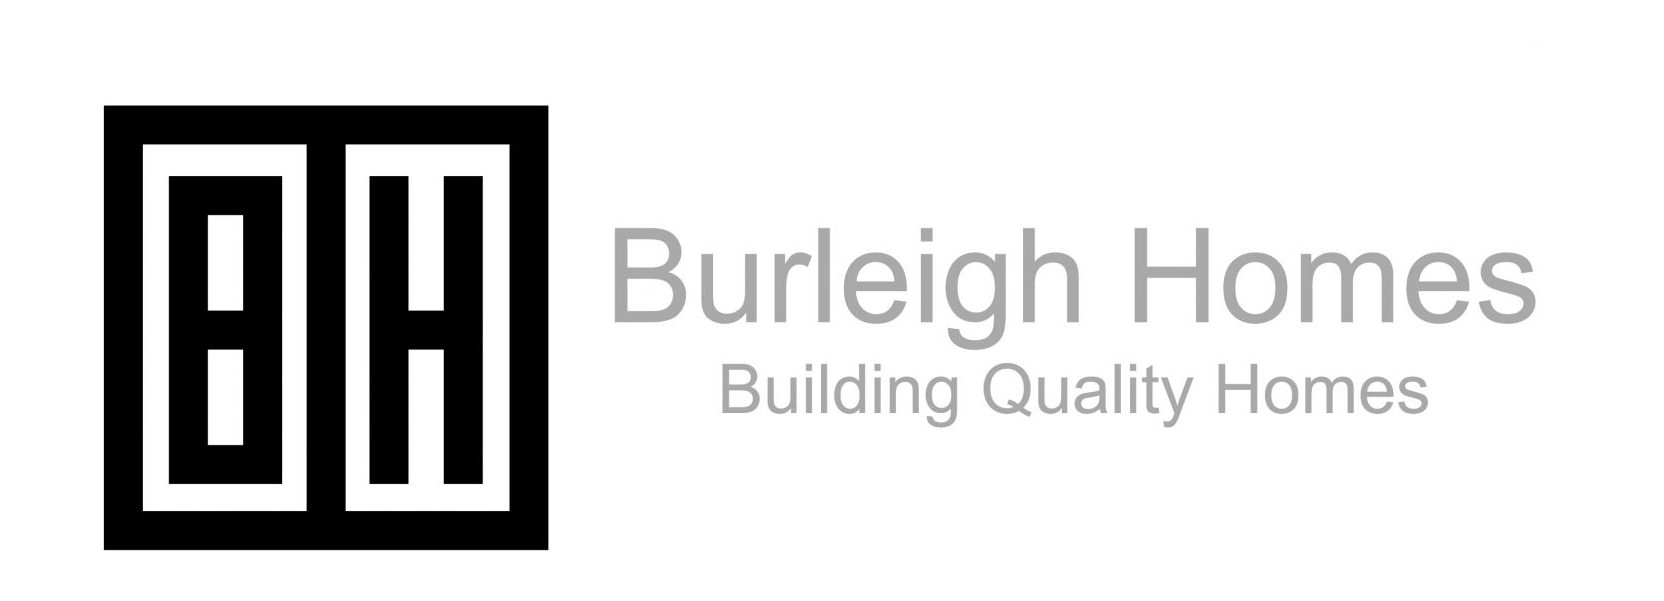 Burleigh Homes